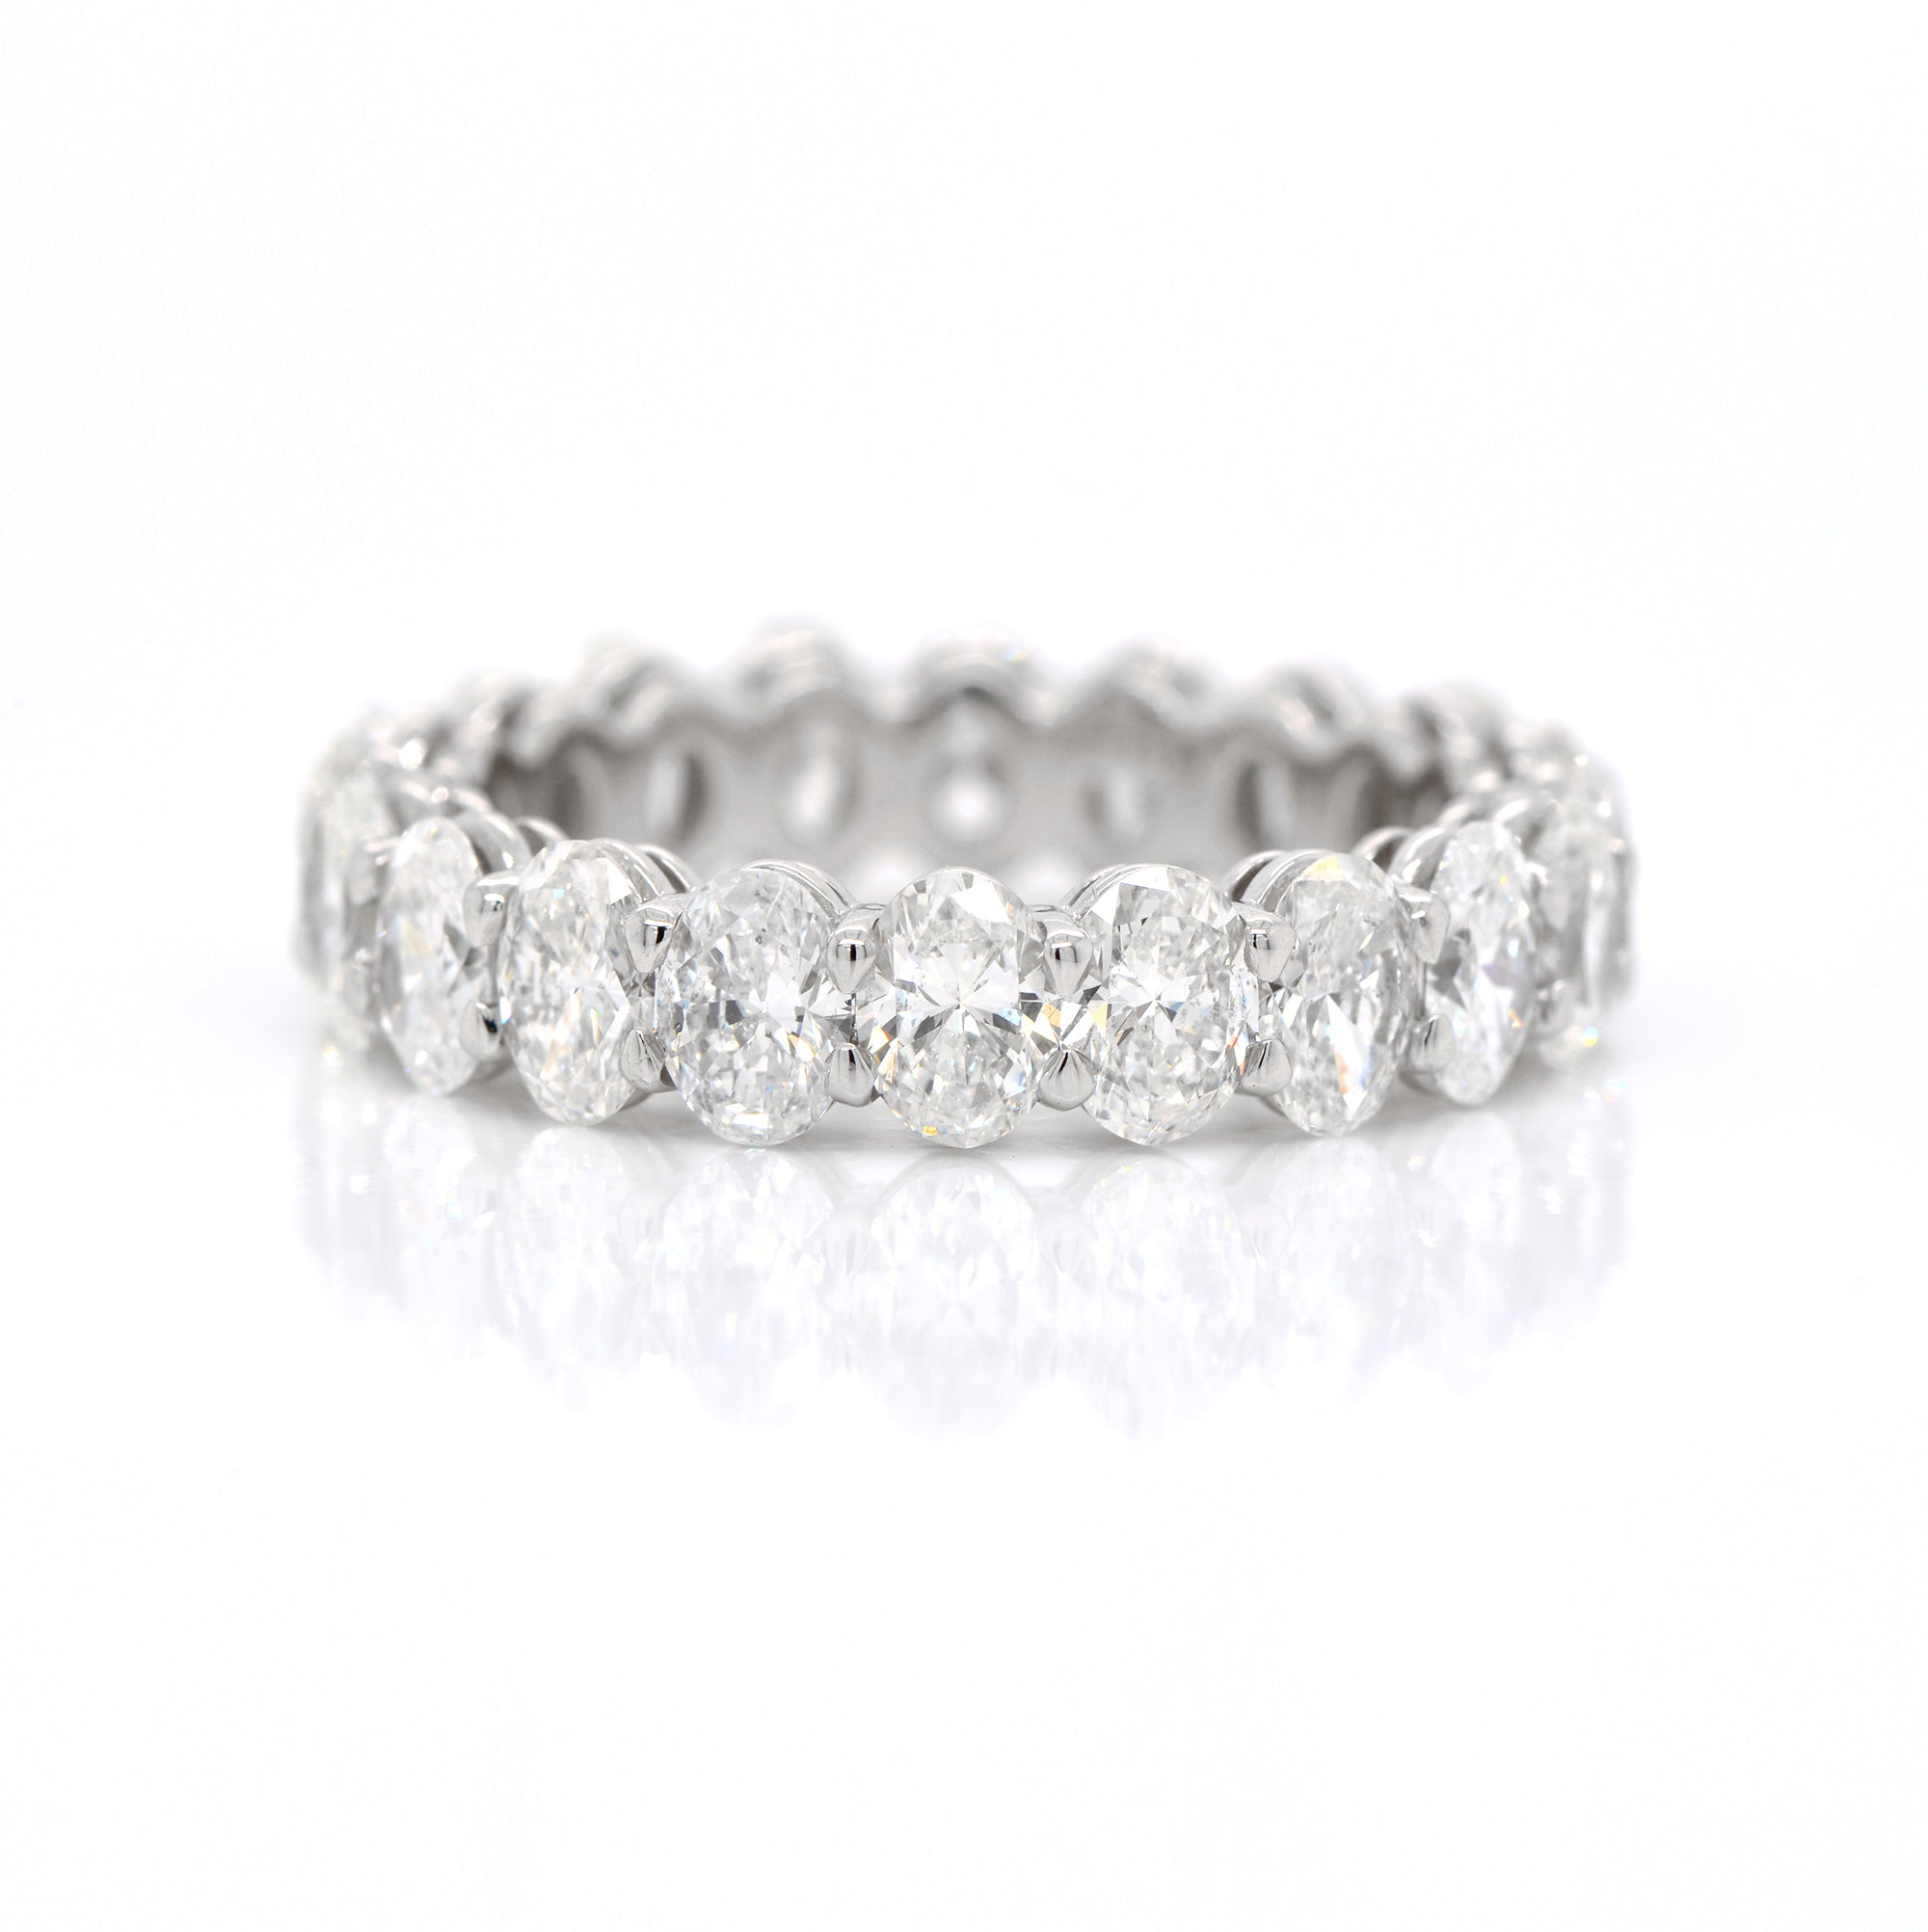 Platinum oval diamond eternity band featuring 20 oval diamonds (F-G color, VS-SI clarity) weighing a total of 4.09 carats.